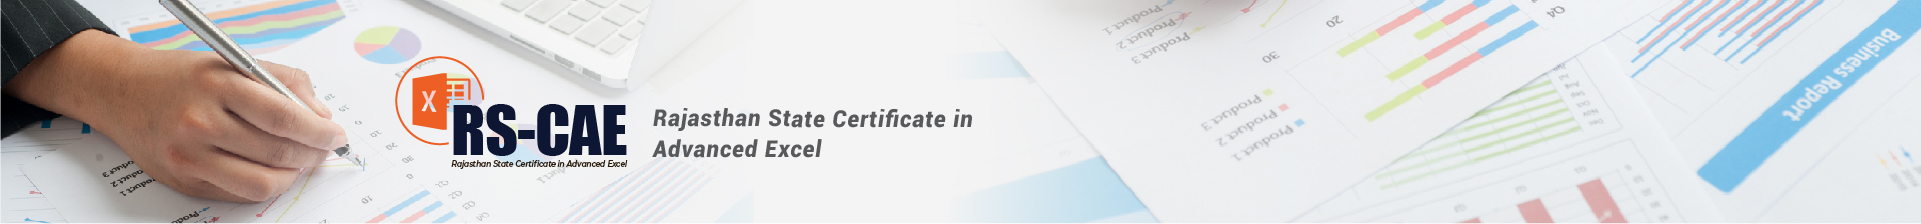 Rajasthan State Certificate in Advanced Excel